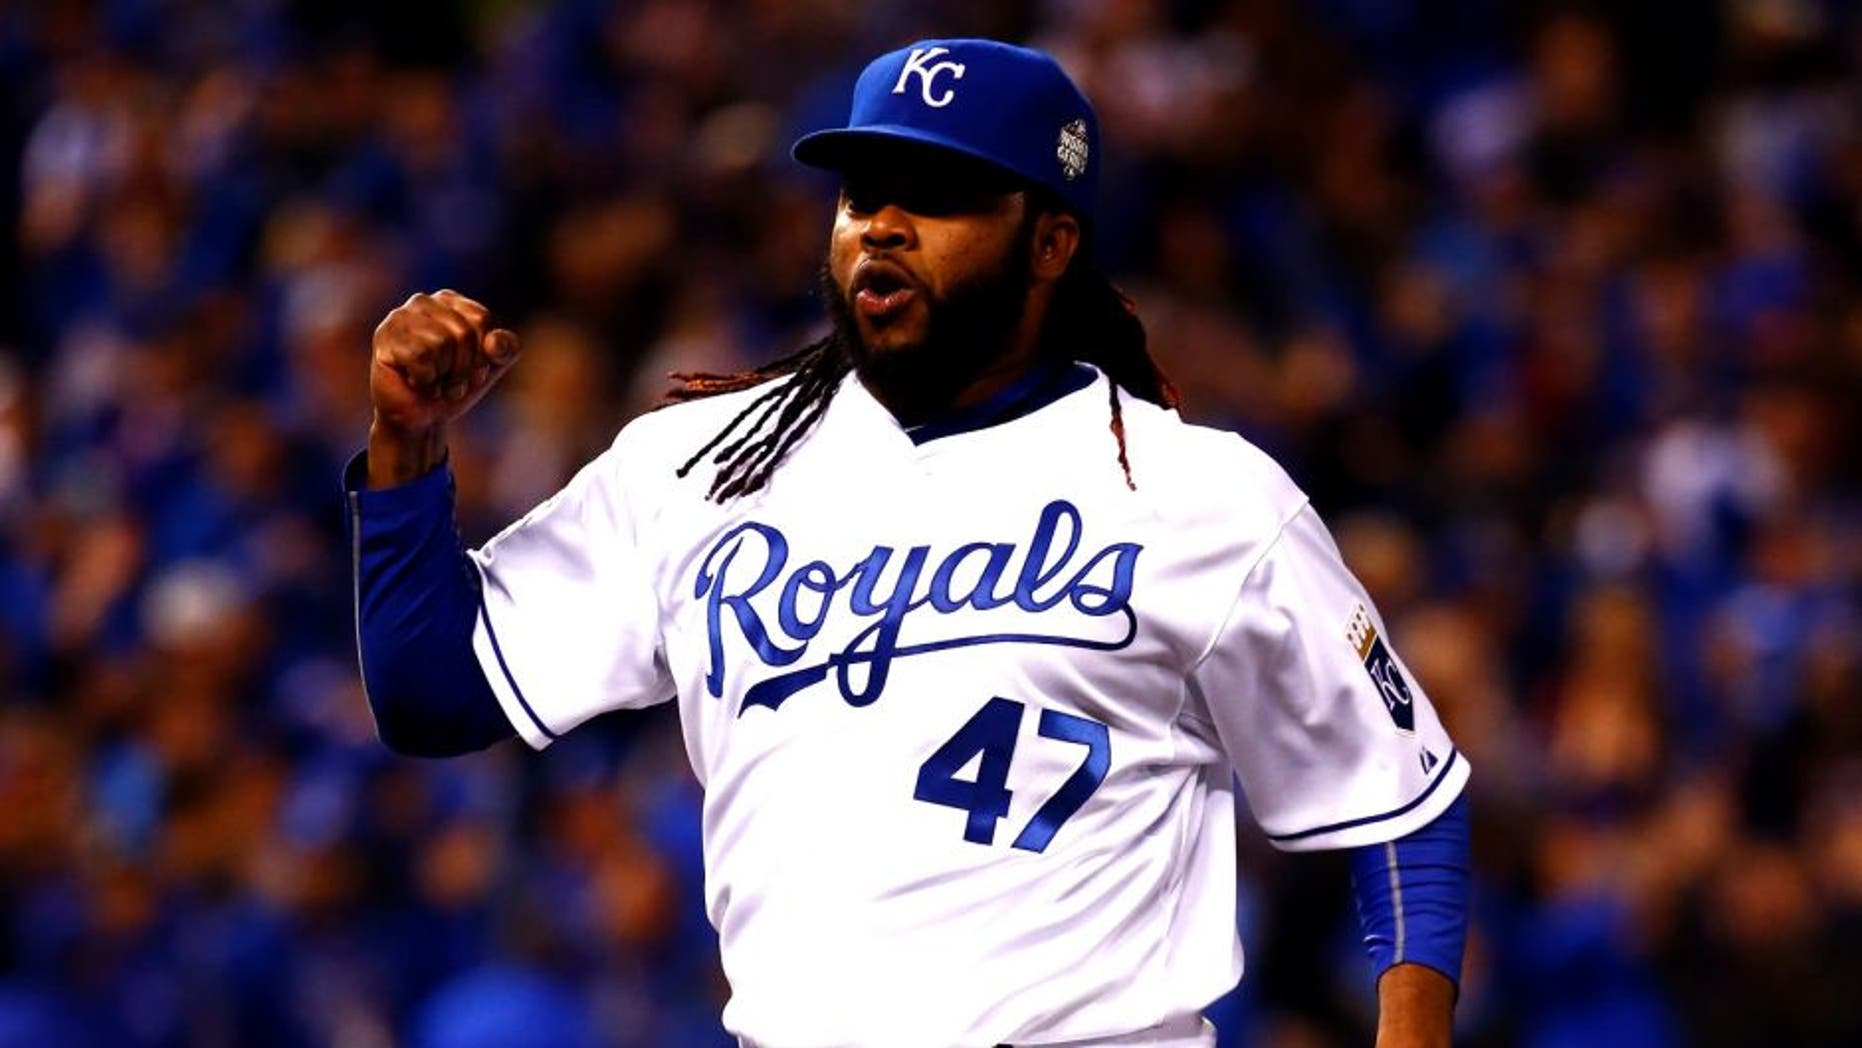 KANSAS CITY, MO - OCTOBER 28: Johnny Cueto #47 celebrates after Alcides Escobar #2 of the Kansas City Royals fields a ground ball hit by Juan Lagares #12 of the New York Mets (not pictured) in the eighth inning in Game Two of the 2015 World Series between the Kansas City Royals and the New York Mets at Kauffman Stadium on October 28, 2015 in Kansas City, Missouri. (Photo by Jamie Squire/Getty Images)